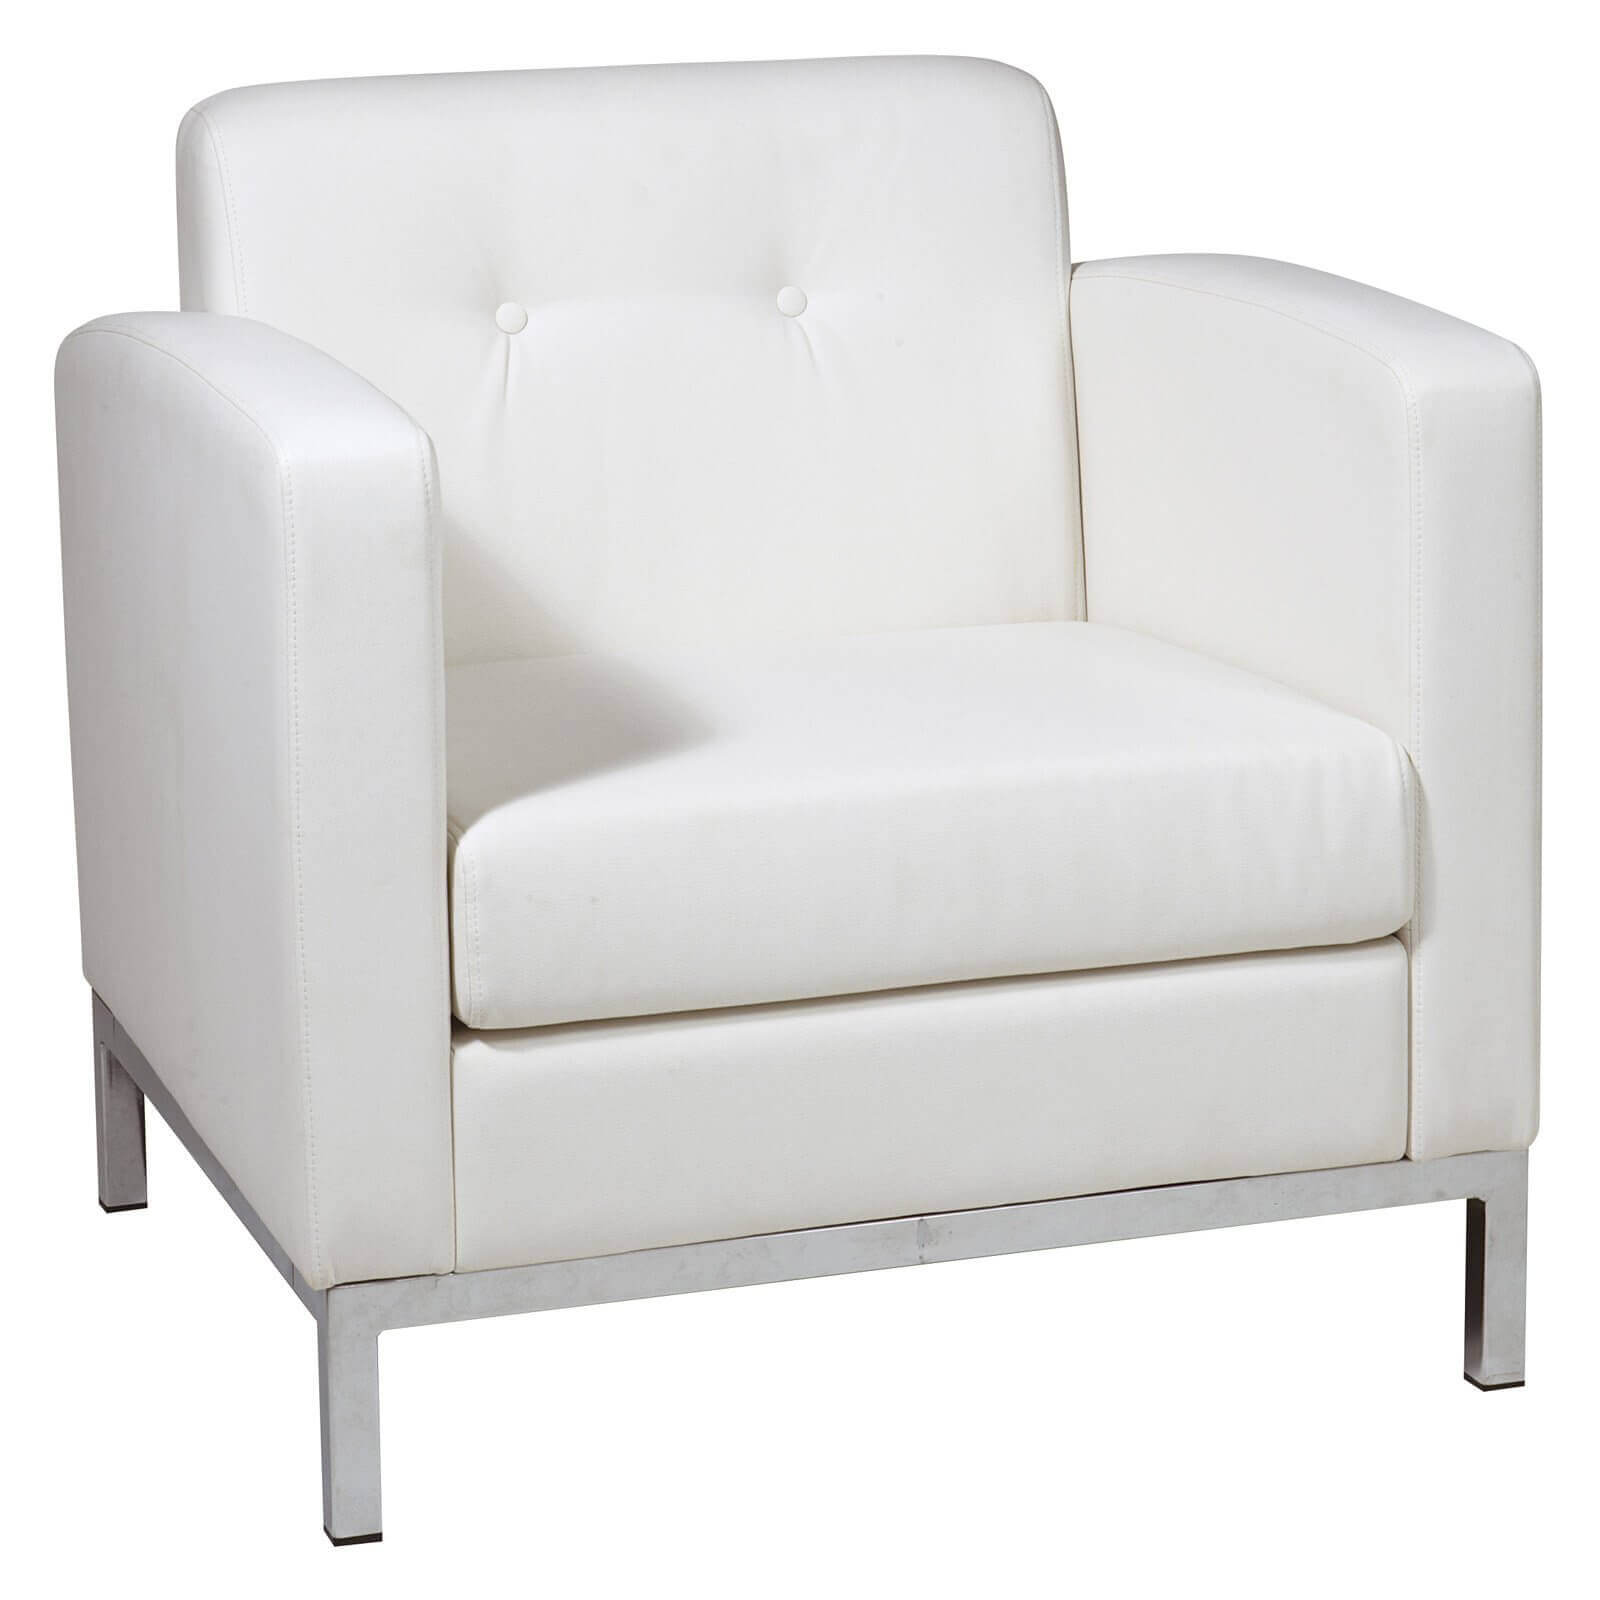 Streamlined, Boxy White Faux Leather Design Of This Accent Chair From  Office Star Provides Contemporary .